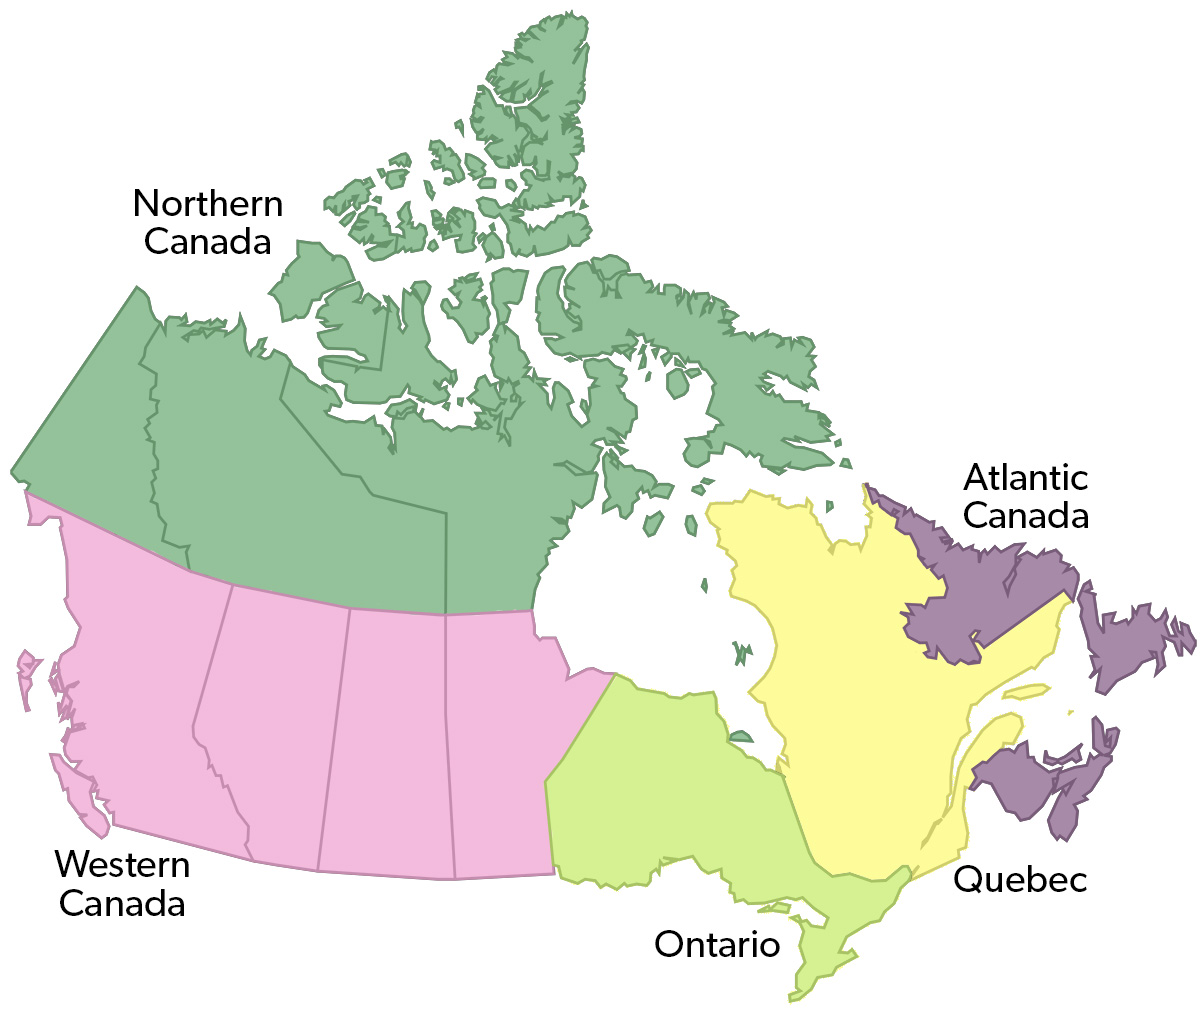 Map Of Western Canada Provinces.Regional Economics In Canada The Canadian Encyclopedia